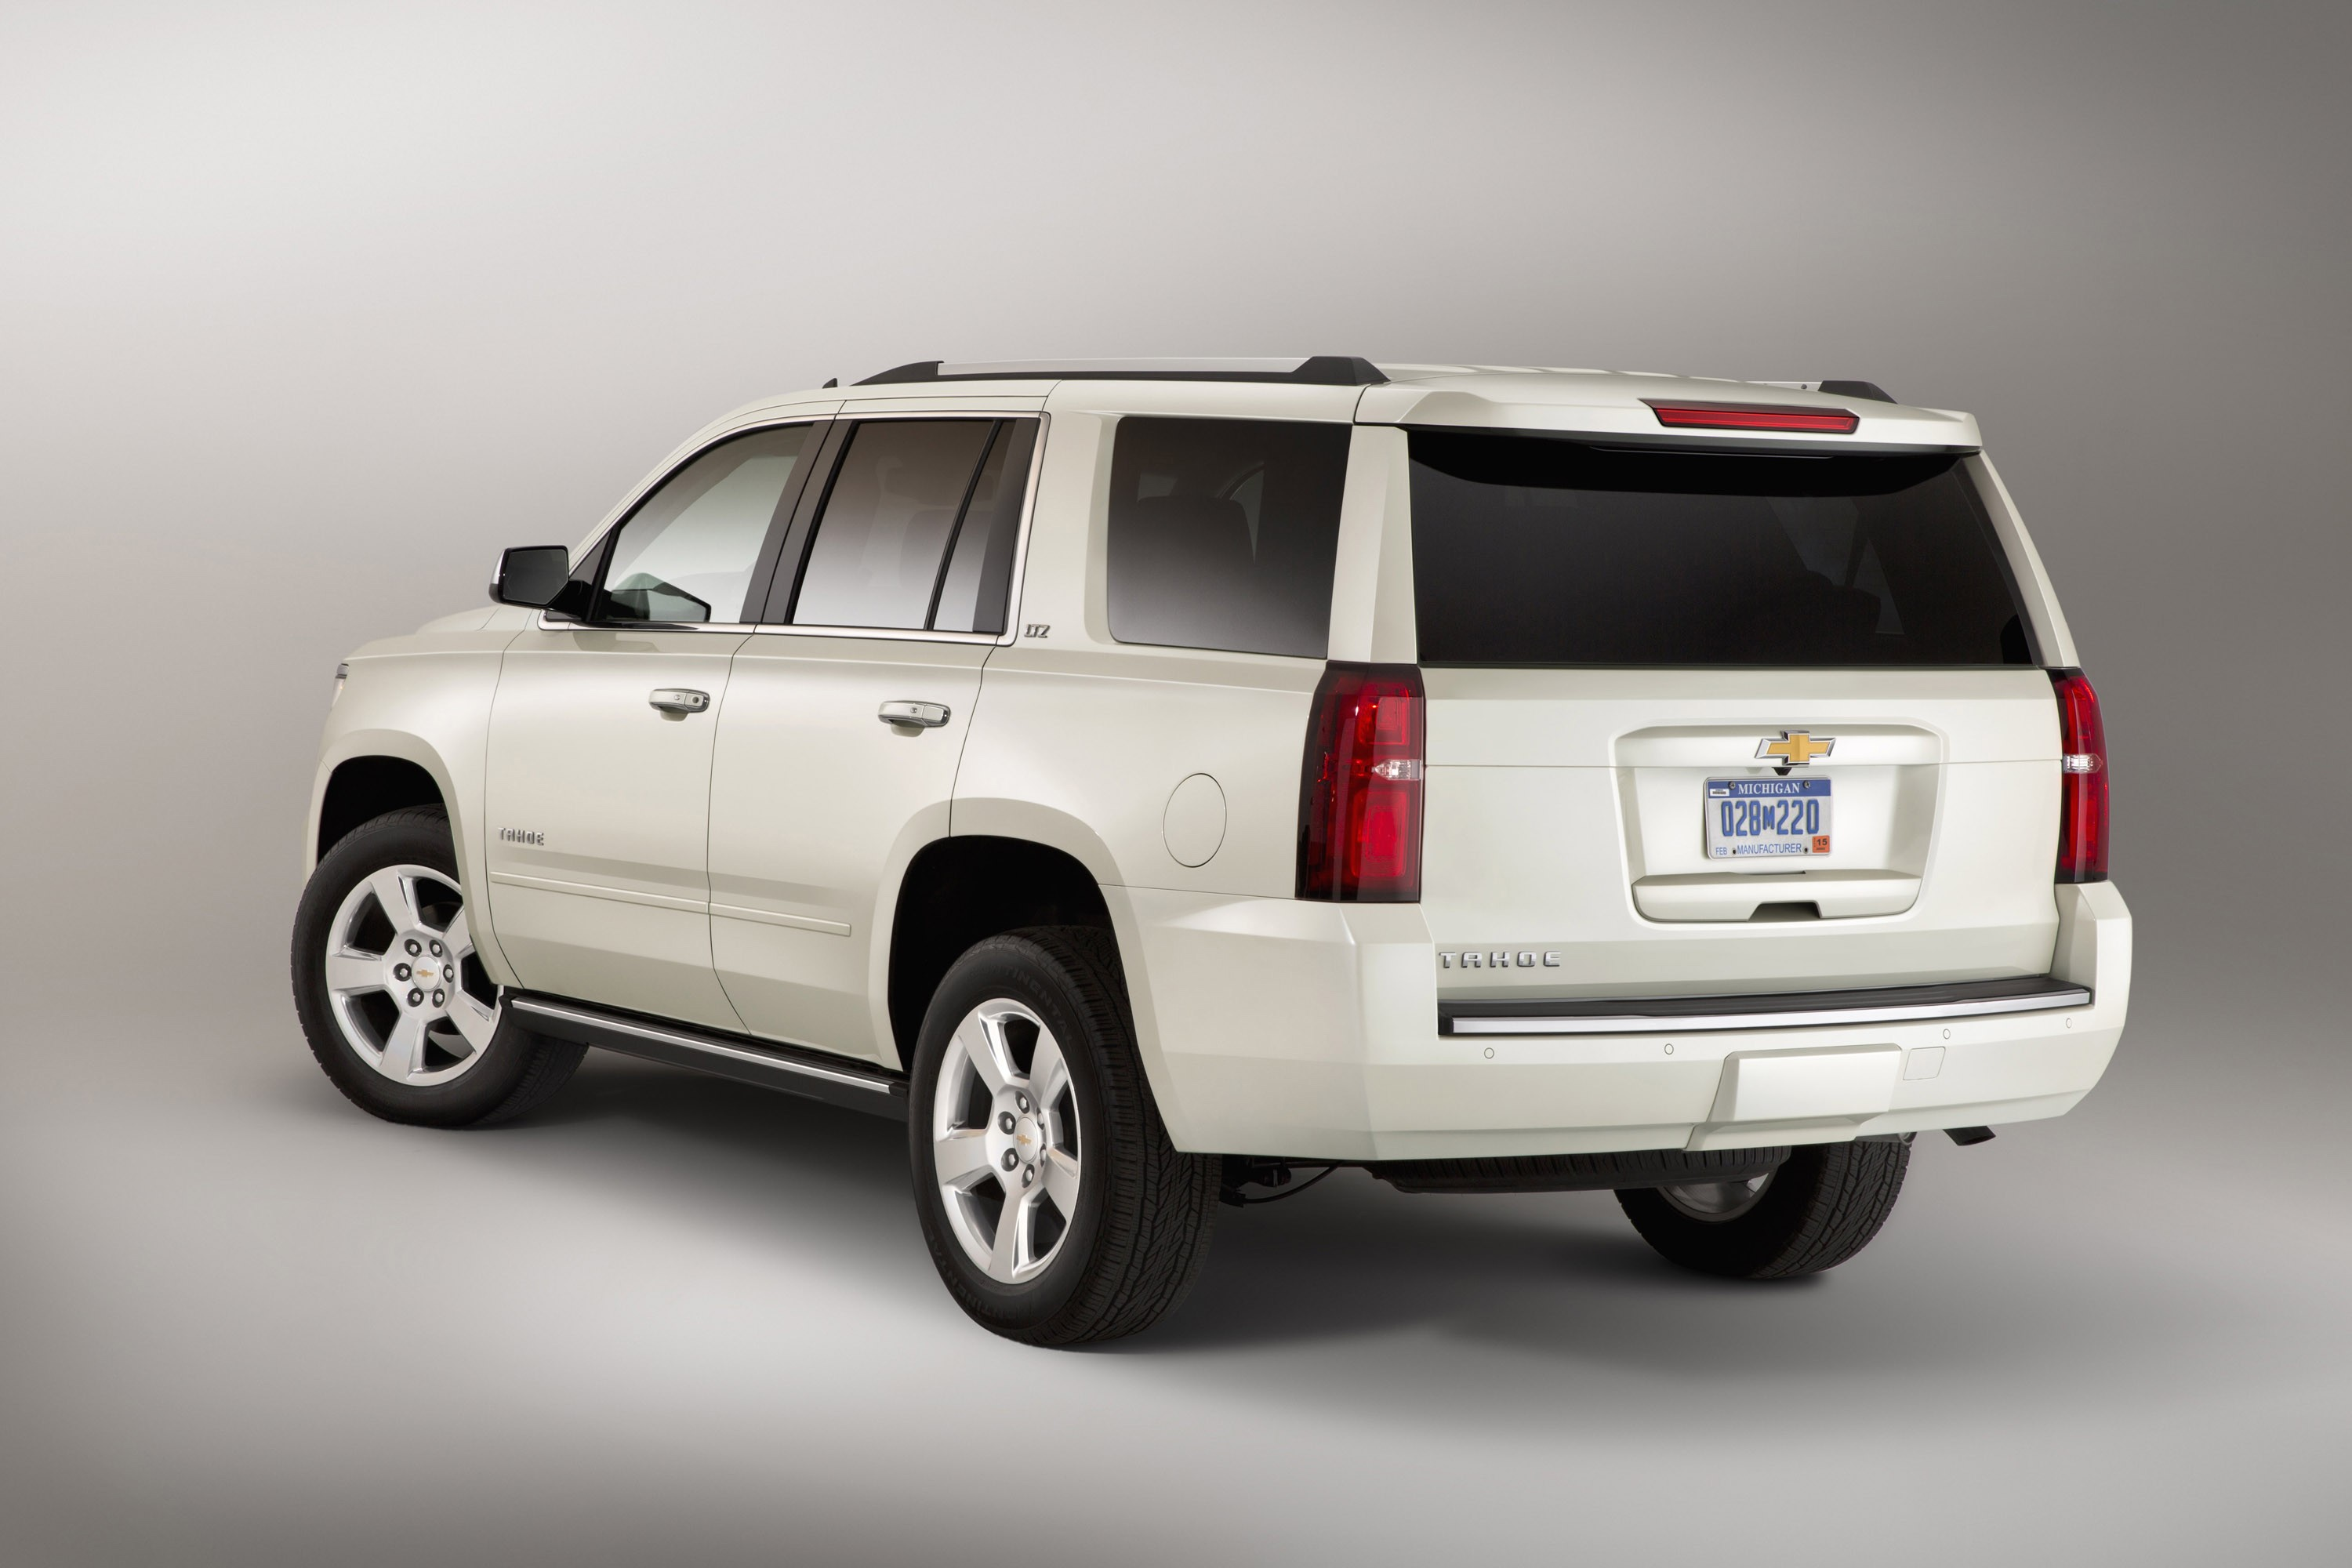 tahoe and chevrolet conceptcarz com suv information image news